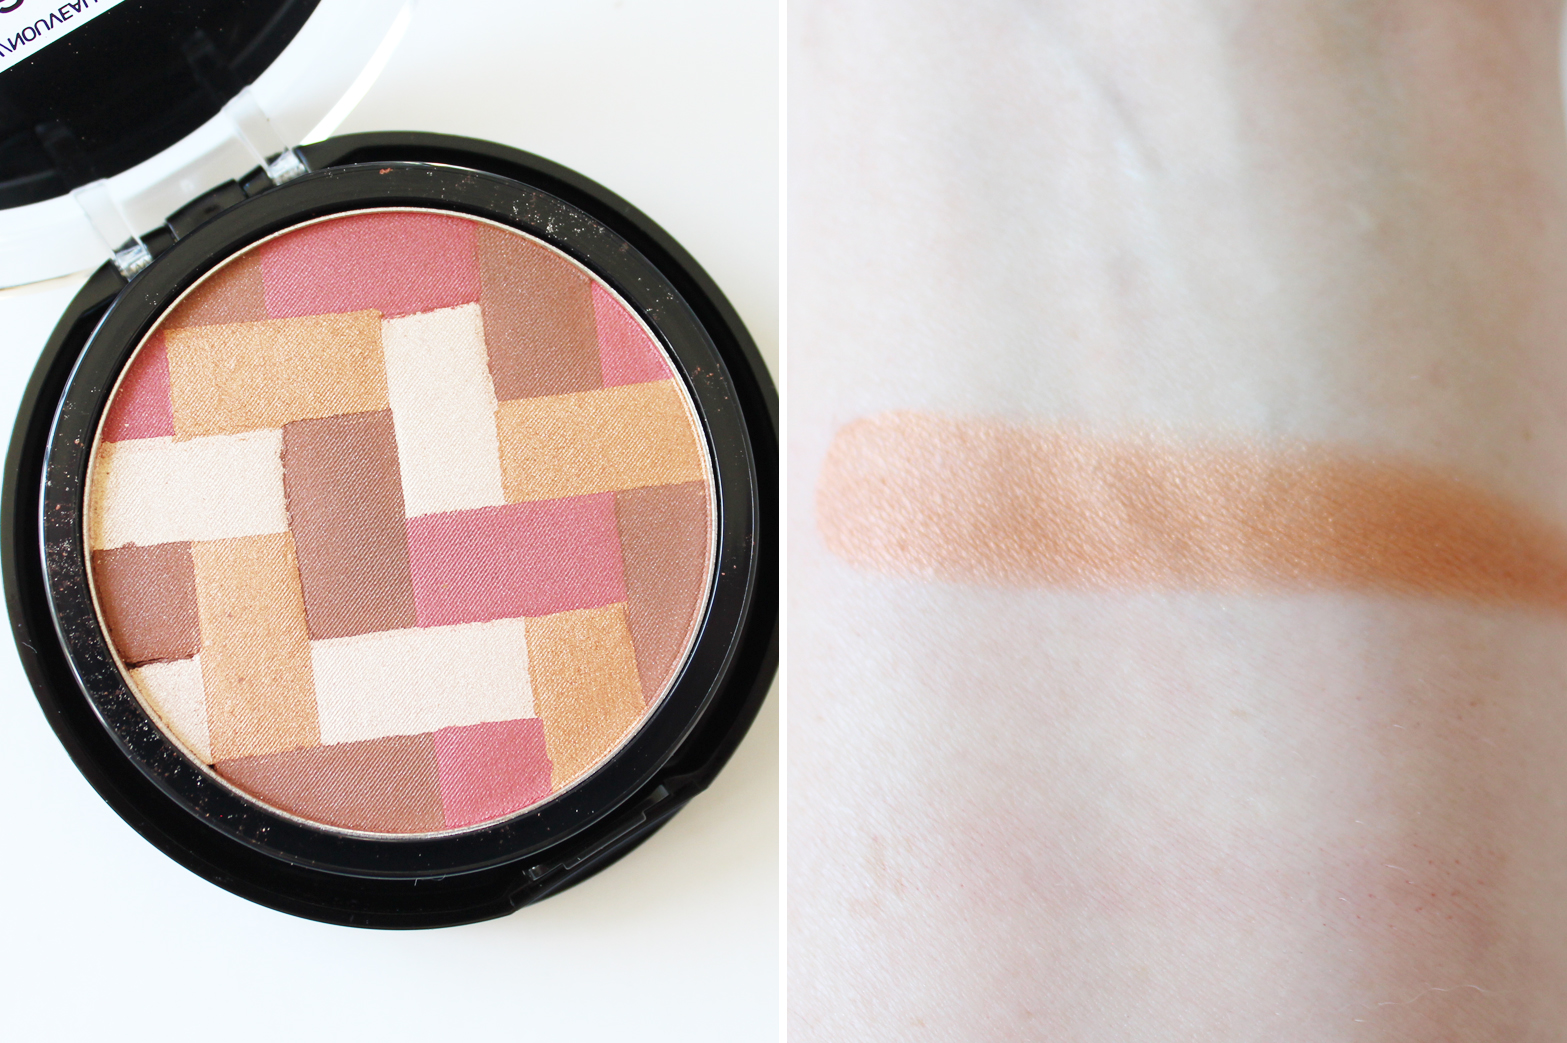 MAYBELLINE | Master Hi-Light Highlighting Bronzer + Master Glaze Blush Stick - Review + Swatches - CassandraMyee